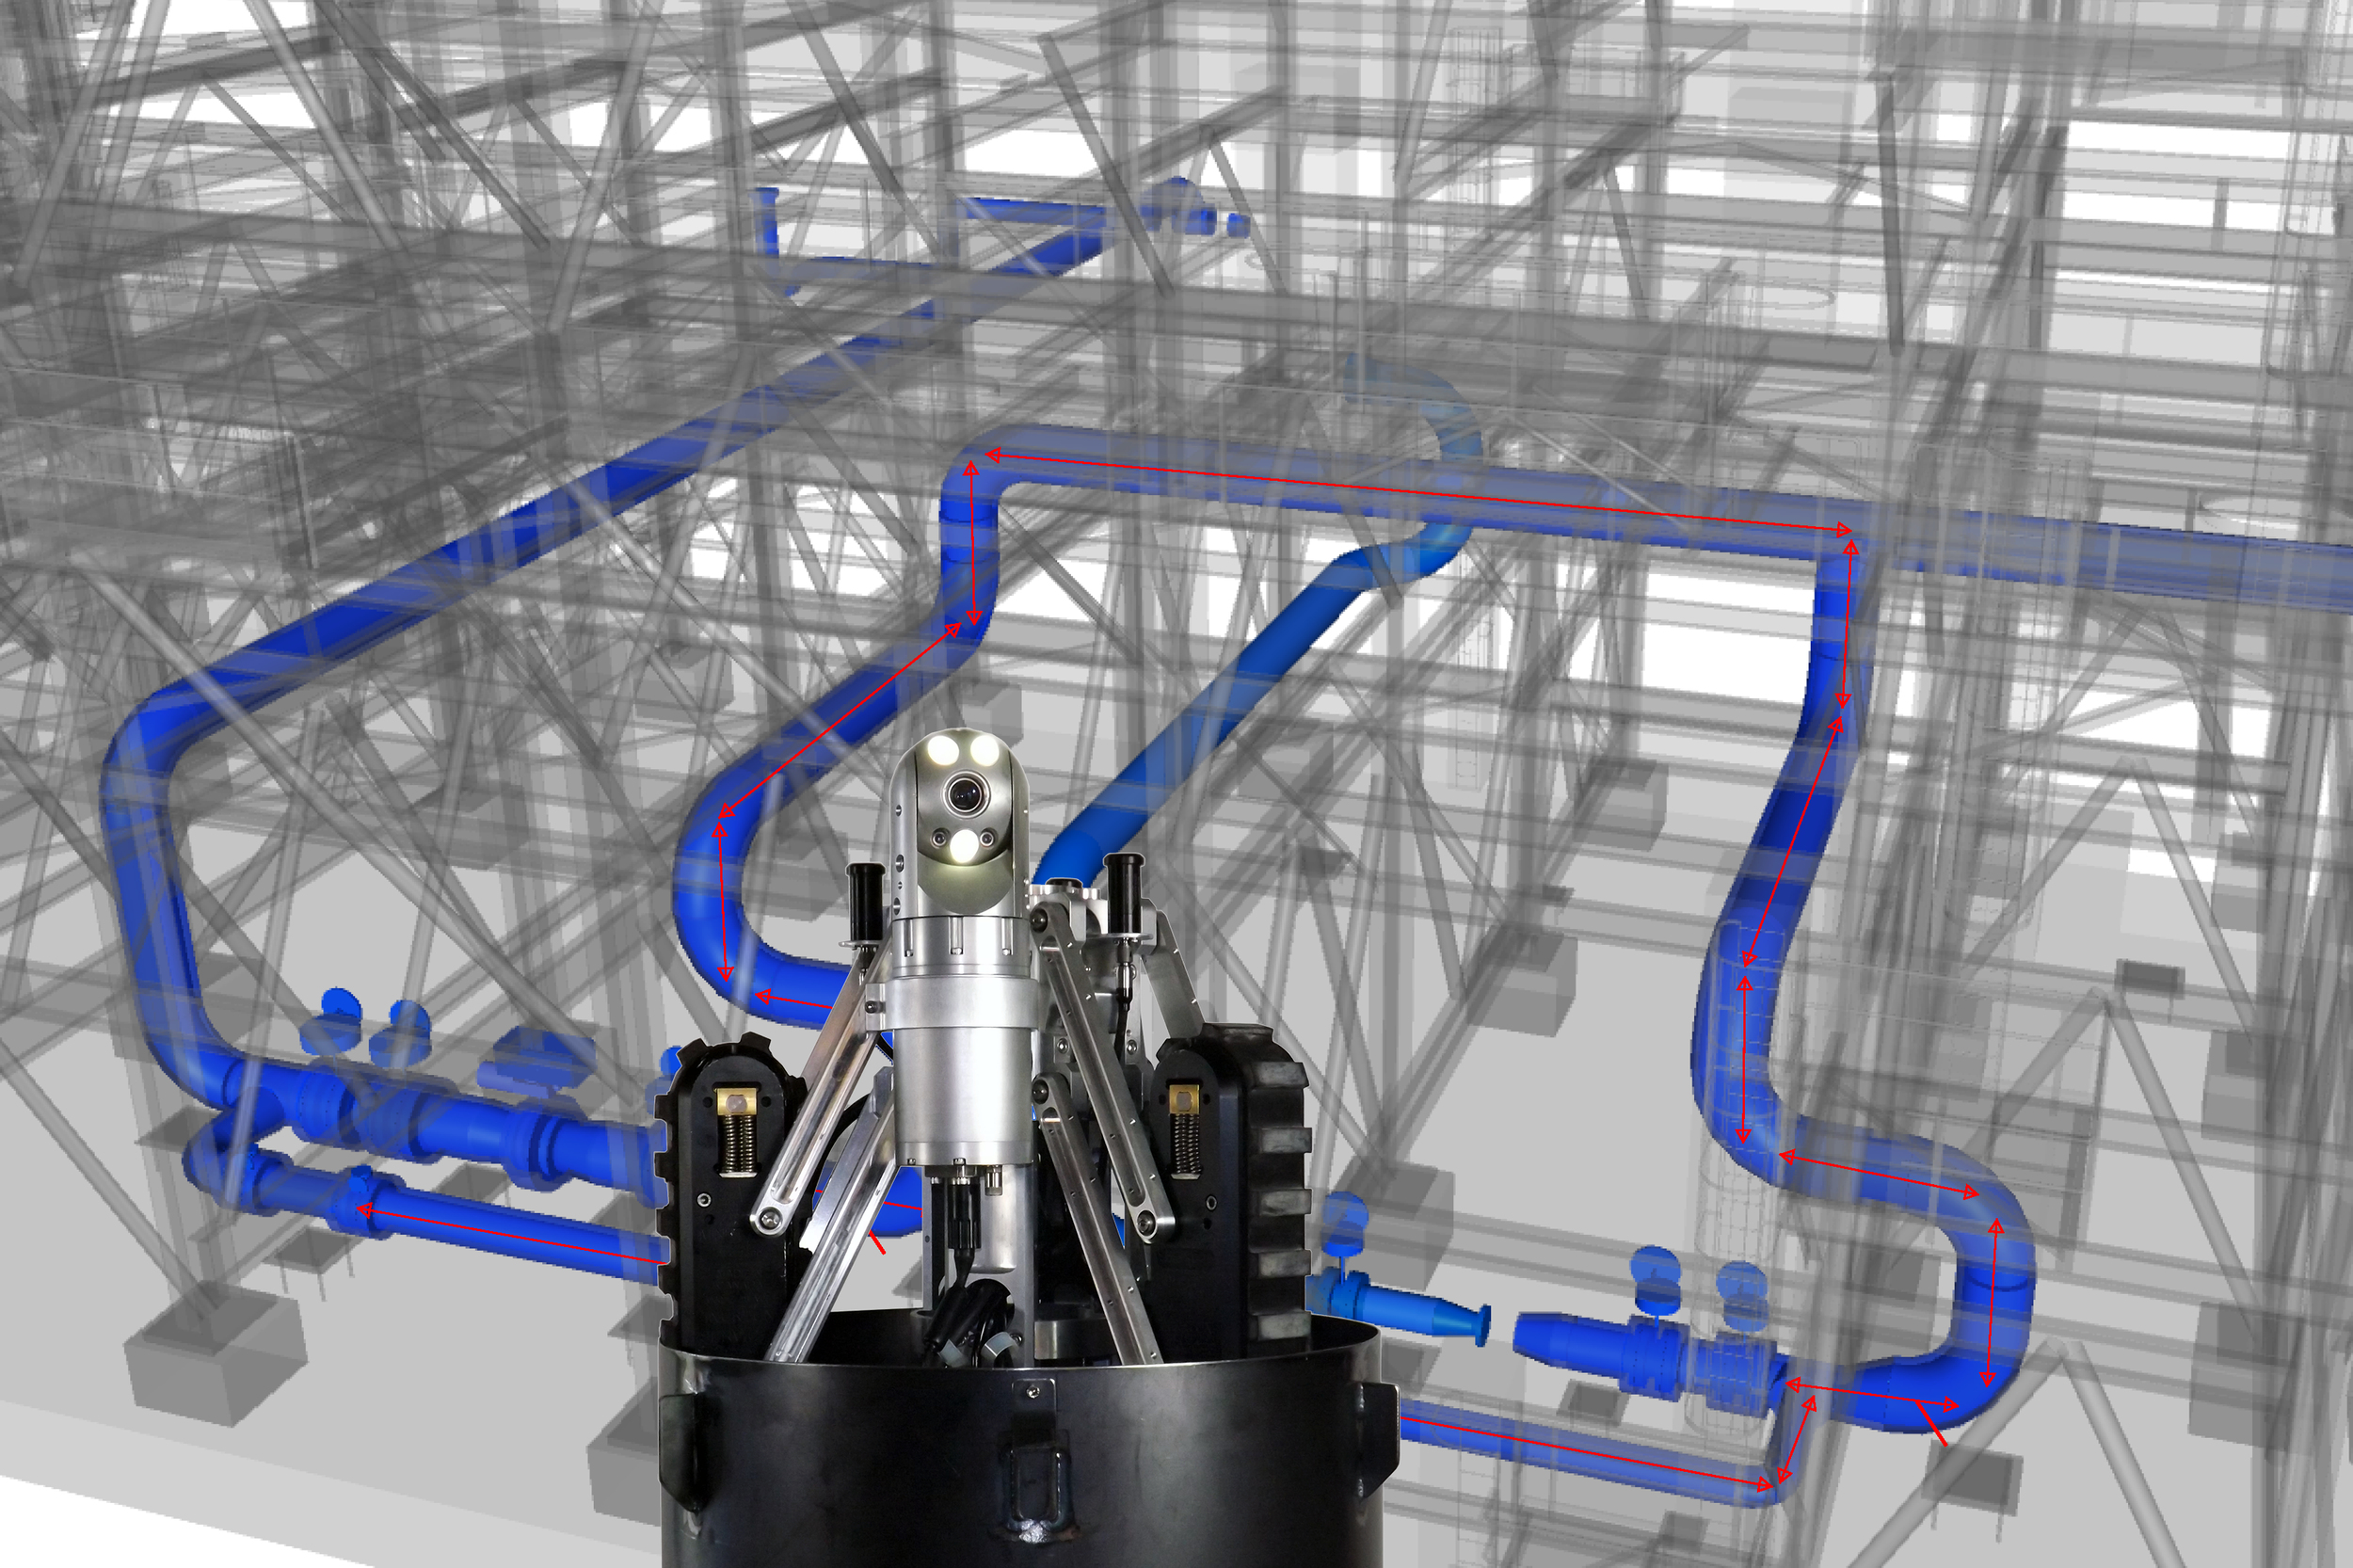 VT150 Vertical Crawler™ Performs Intricate LNG Pipe Inspection